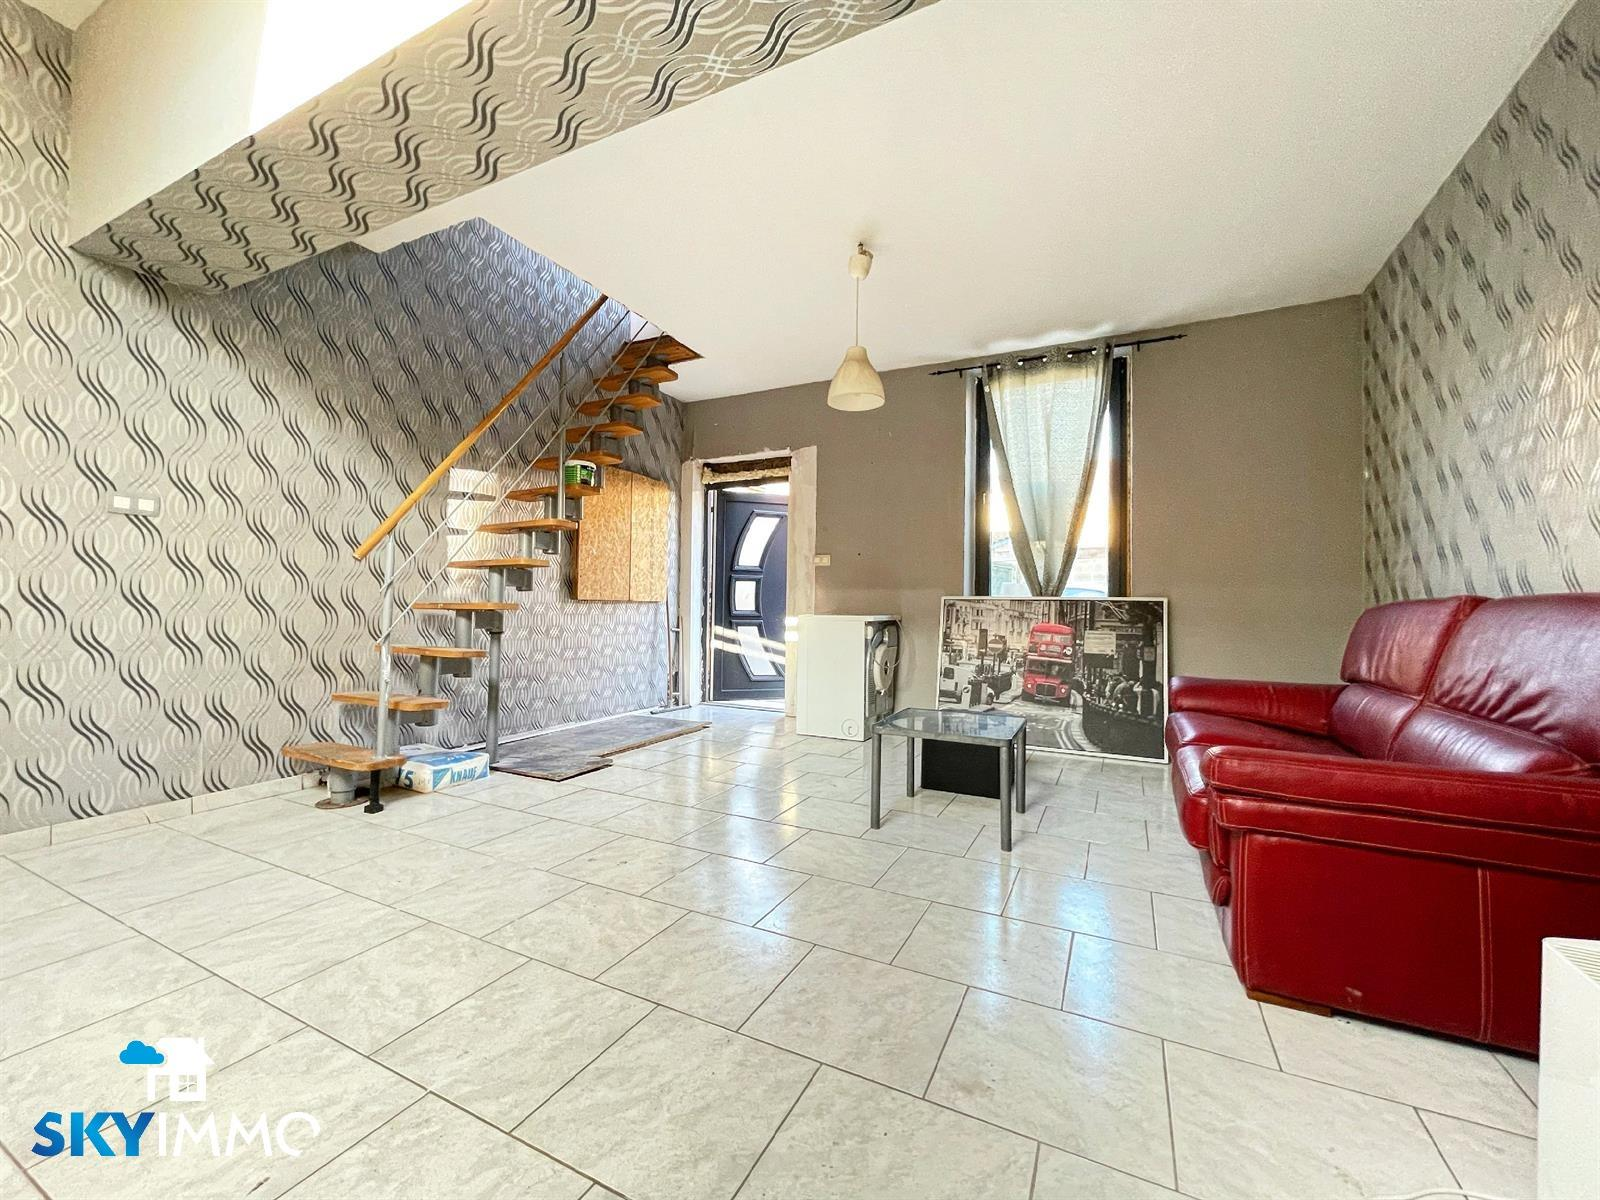 Huis - Flemalle - #4421147-4